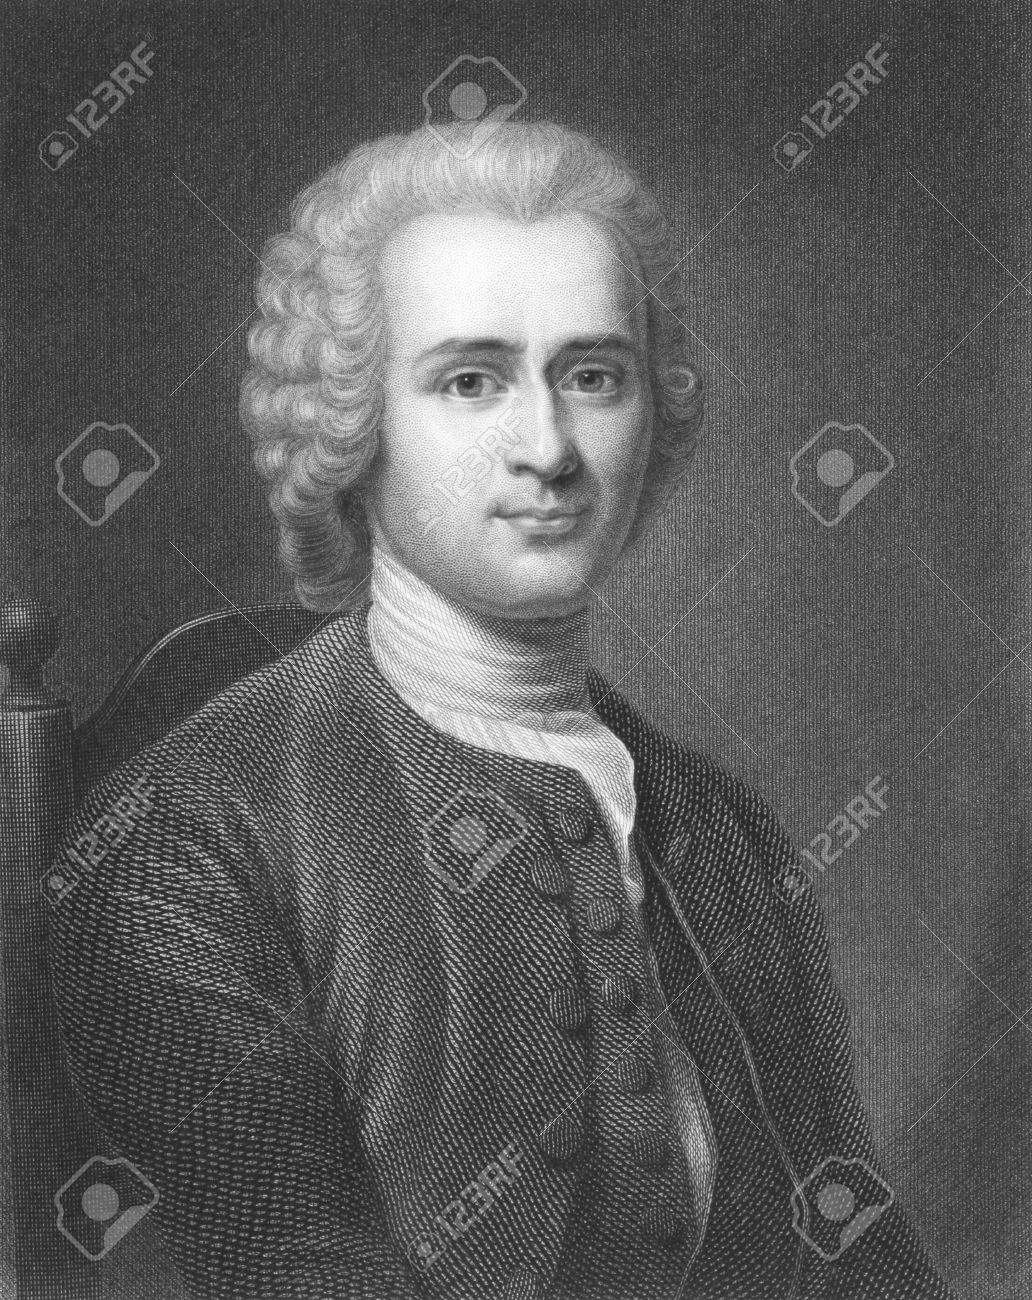 Jean-Jacques Rousseau (1712-1778) On Engraving From The 1800s ...